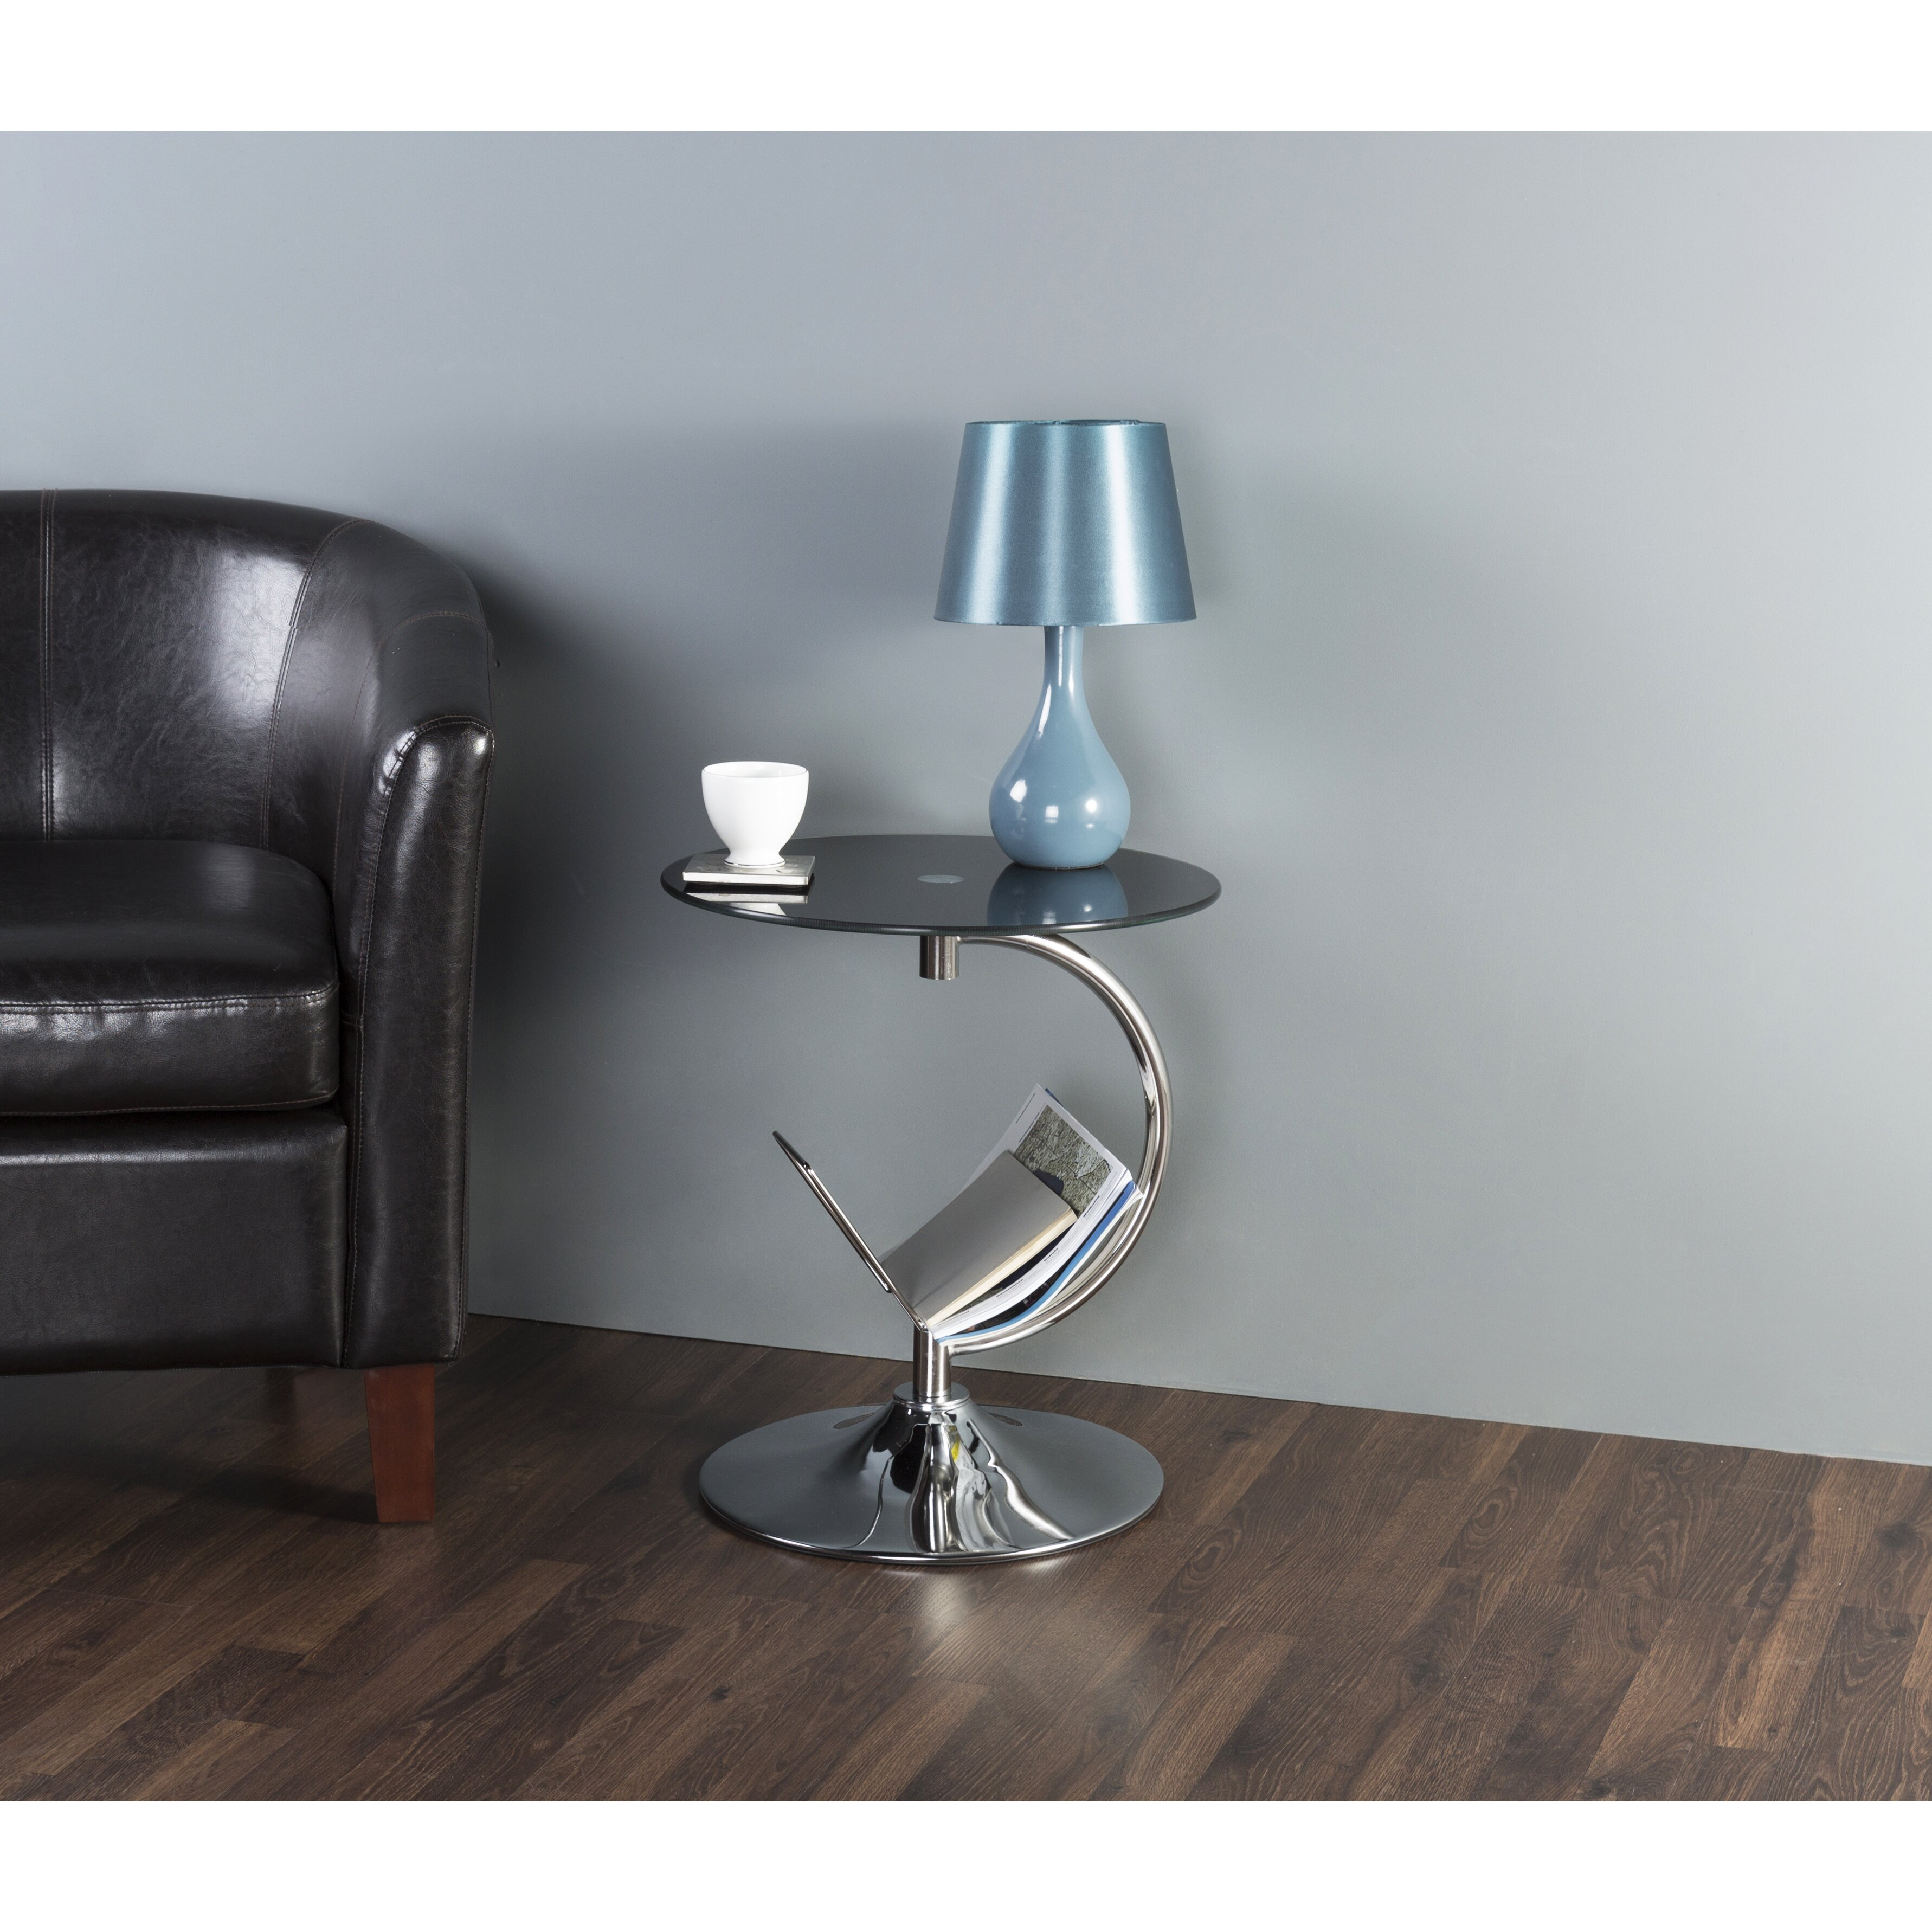 Avf end table with magazine rack reviews for Avf furniture